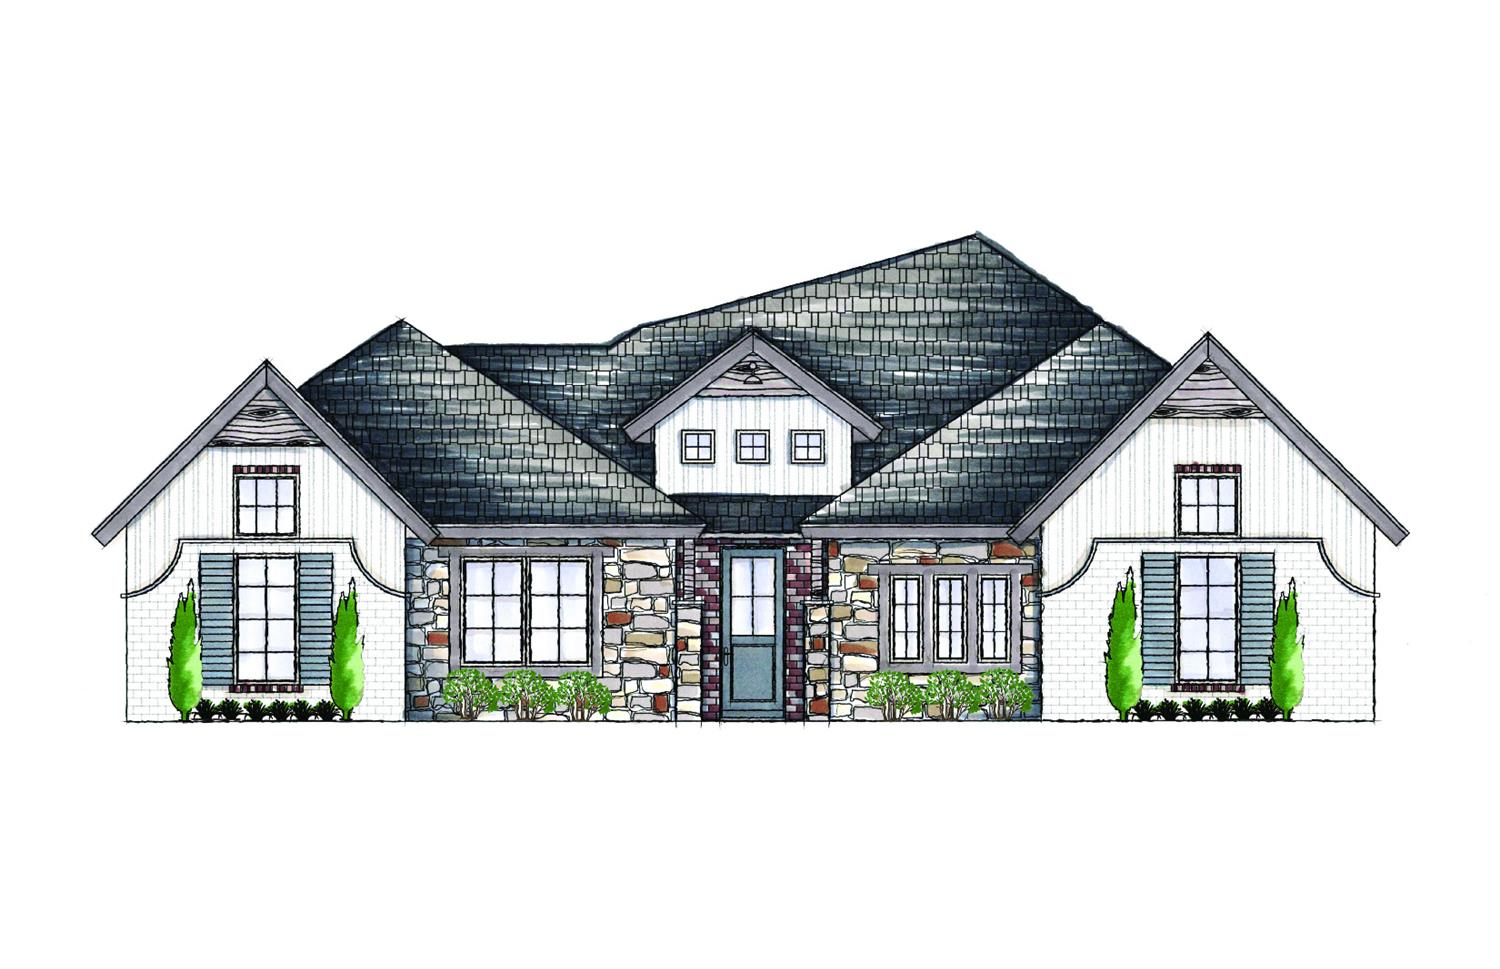 Southern Homes by Dan Wilson is proud to present The Carrick, a beautifully crafted new construction home for you and your family. Every home under construction has its own style and design, unique from its neighbor. You will be sure to find custom details and gorgeous finish selections throughout. Hatton Place is located south of 122nd Street and west of Indiana Avenue. It is south of Lubbock-Cooper's Laura Bush Middle School. The newest retail stores, grocery stores and restaurants are conveniently located nearby. Trusted home builder, quality construction and a wonderful new neighborhood...WELCOME HOME!